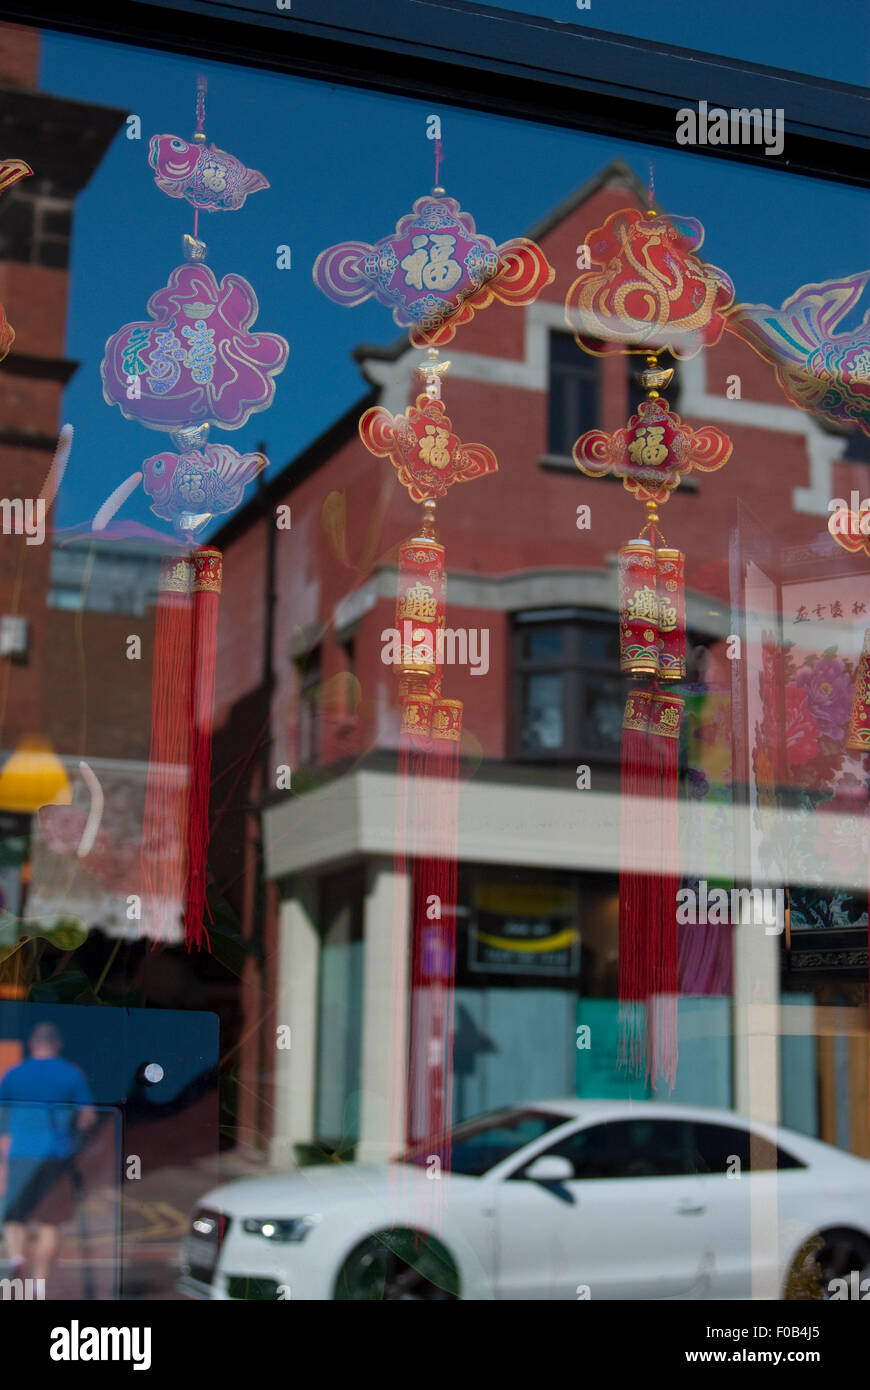 Editorial image taken in China town district of Liverpool of a car and building reflected in a window Stock Photo